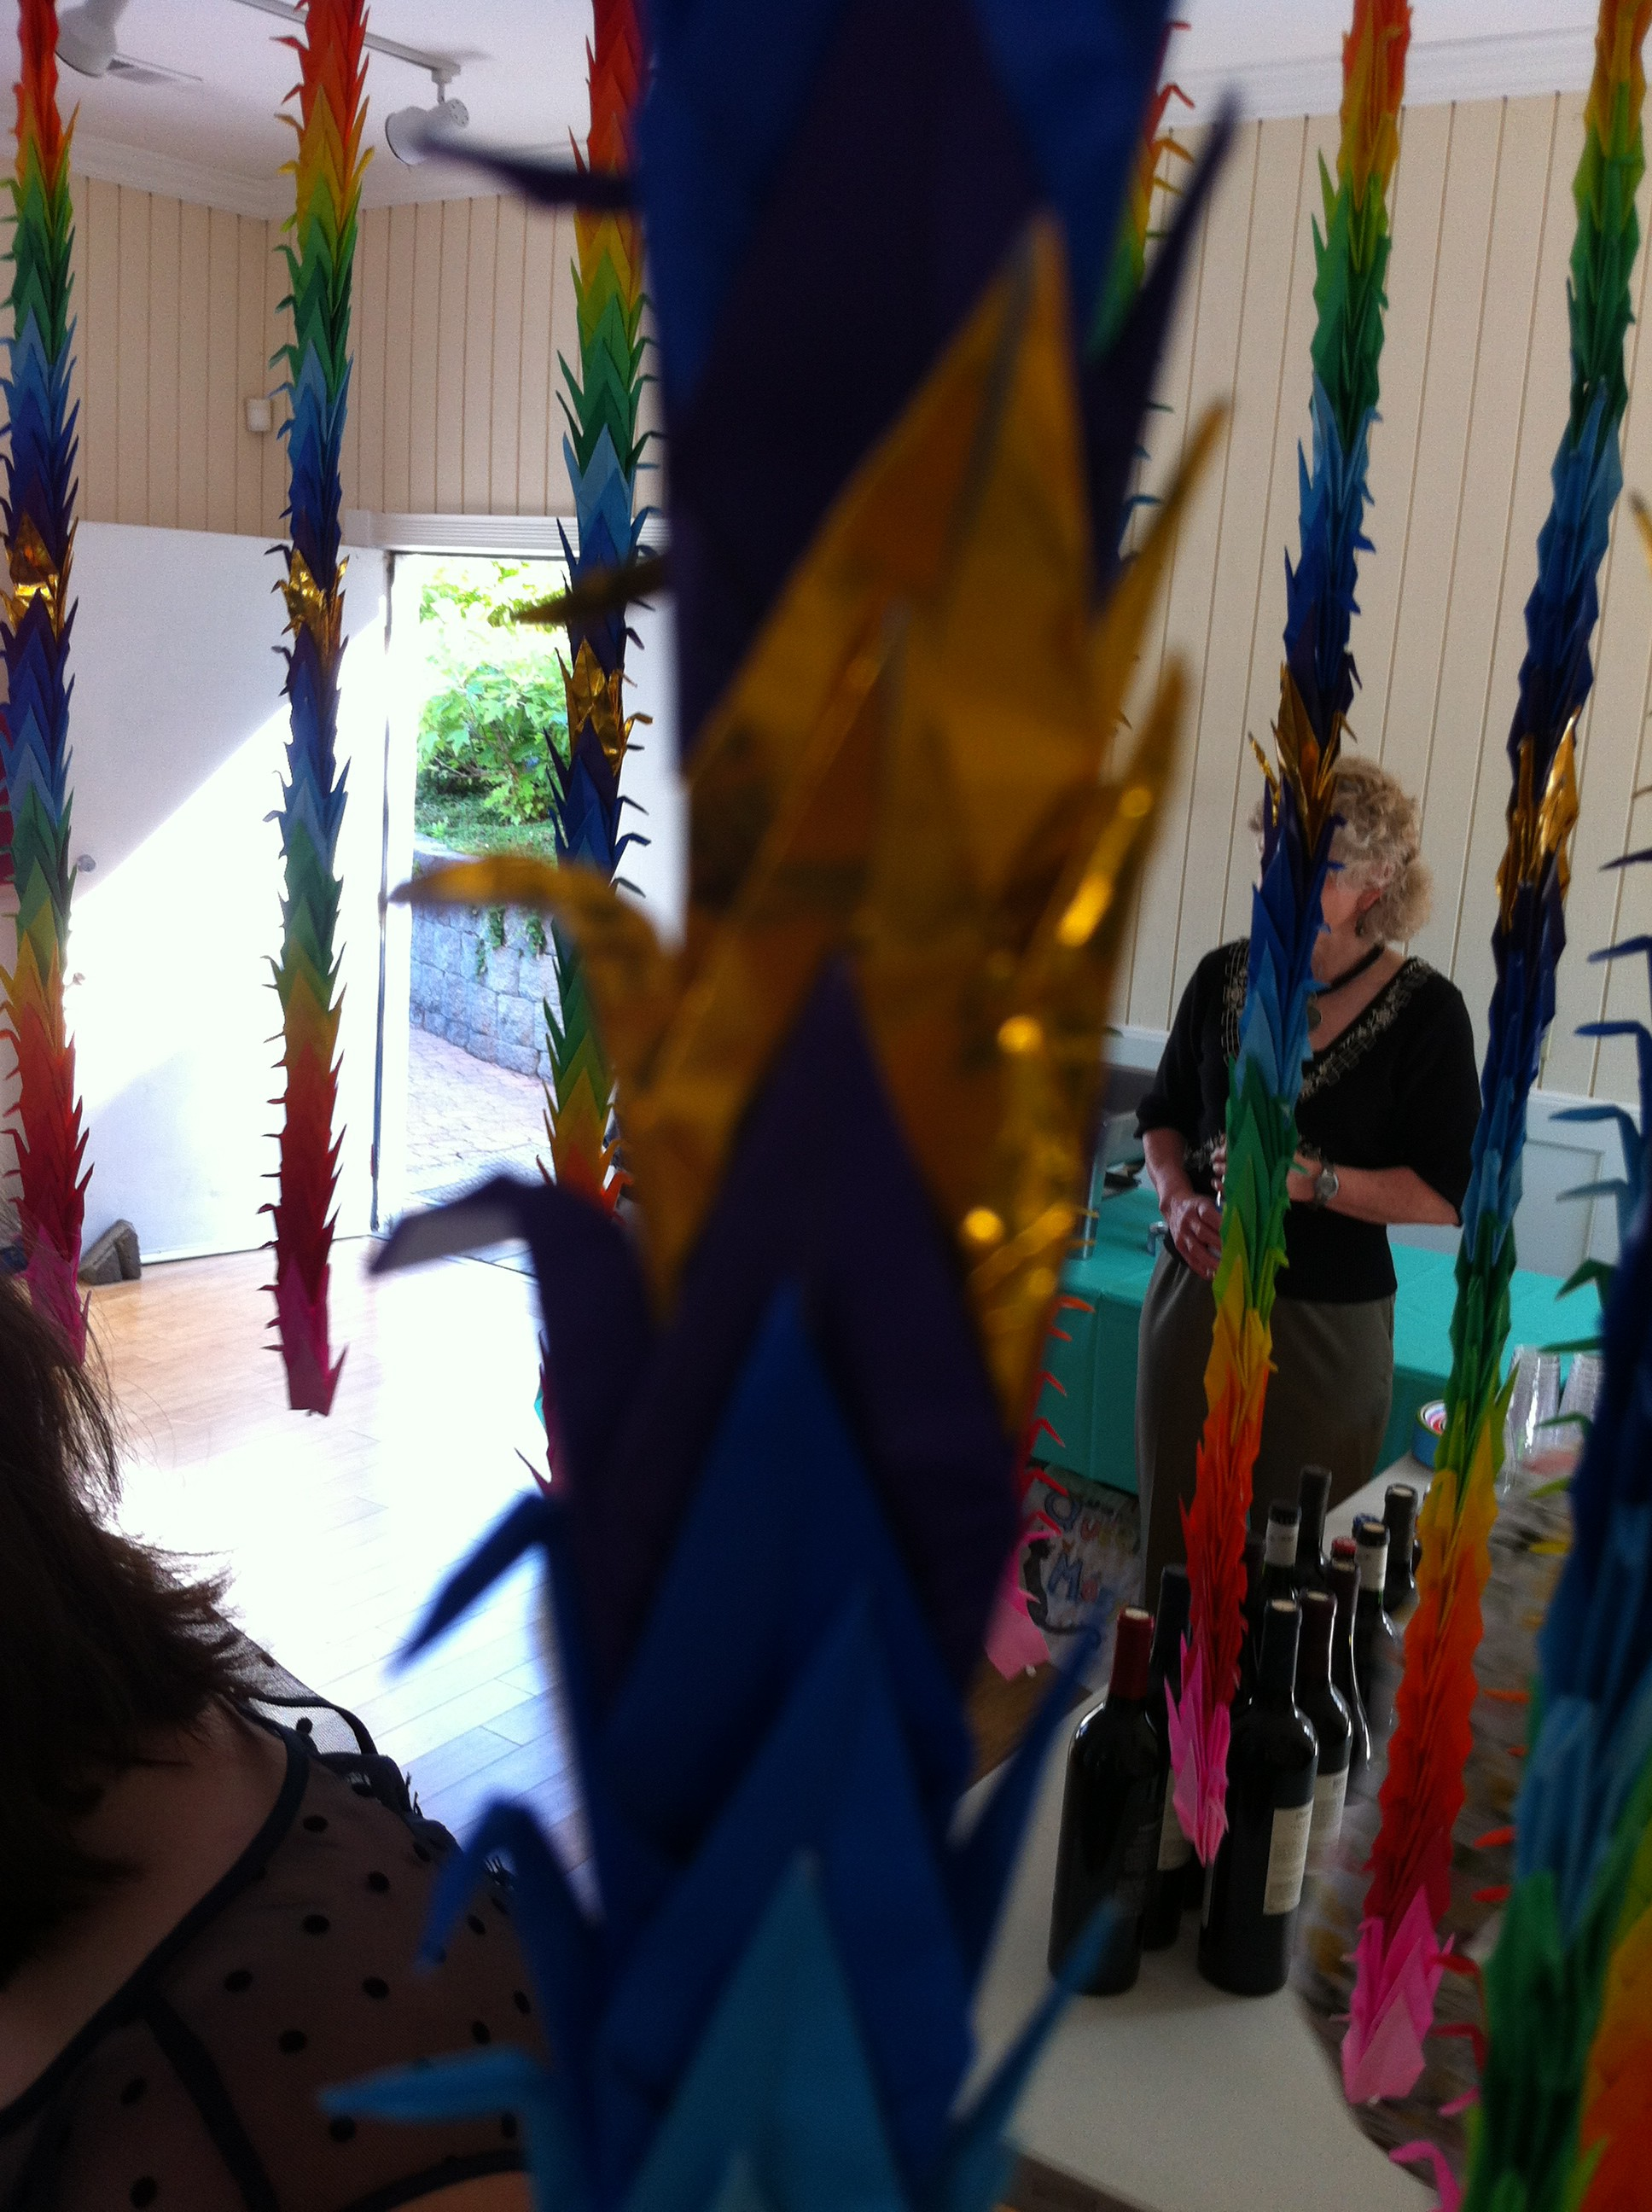 A close-up of the 1,000 origami cranes my niece and her new husband folded for their wedding.